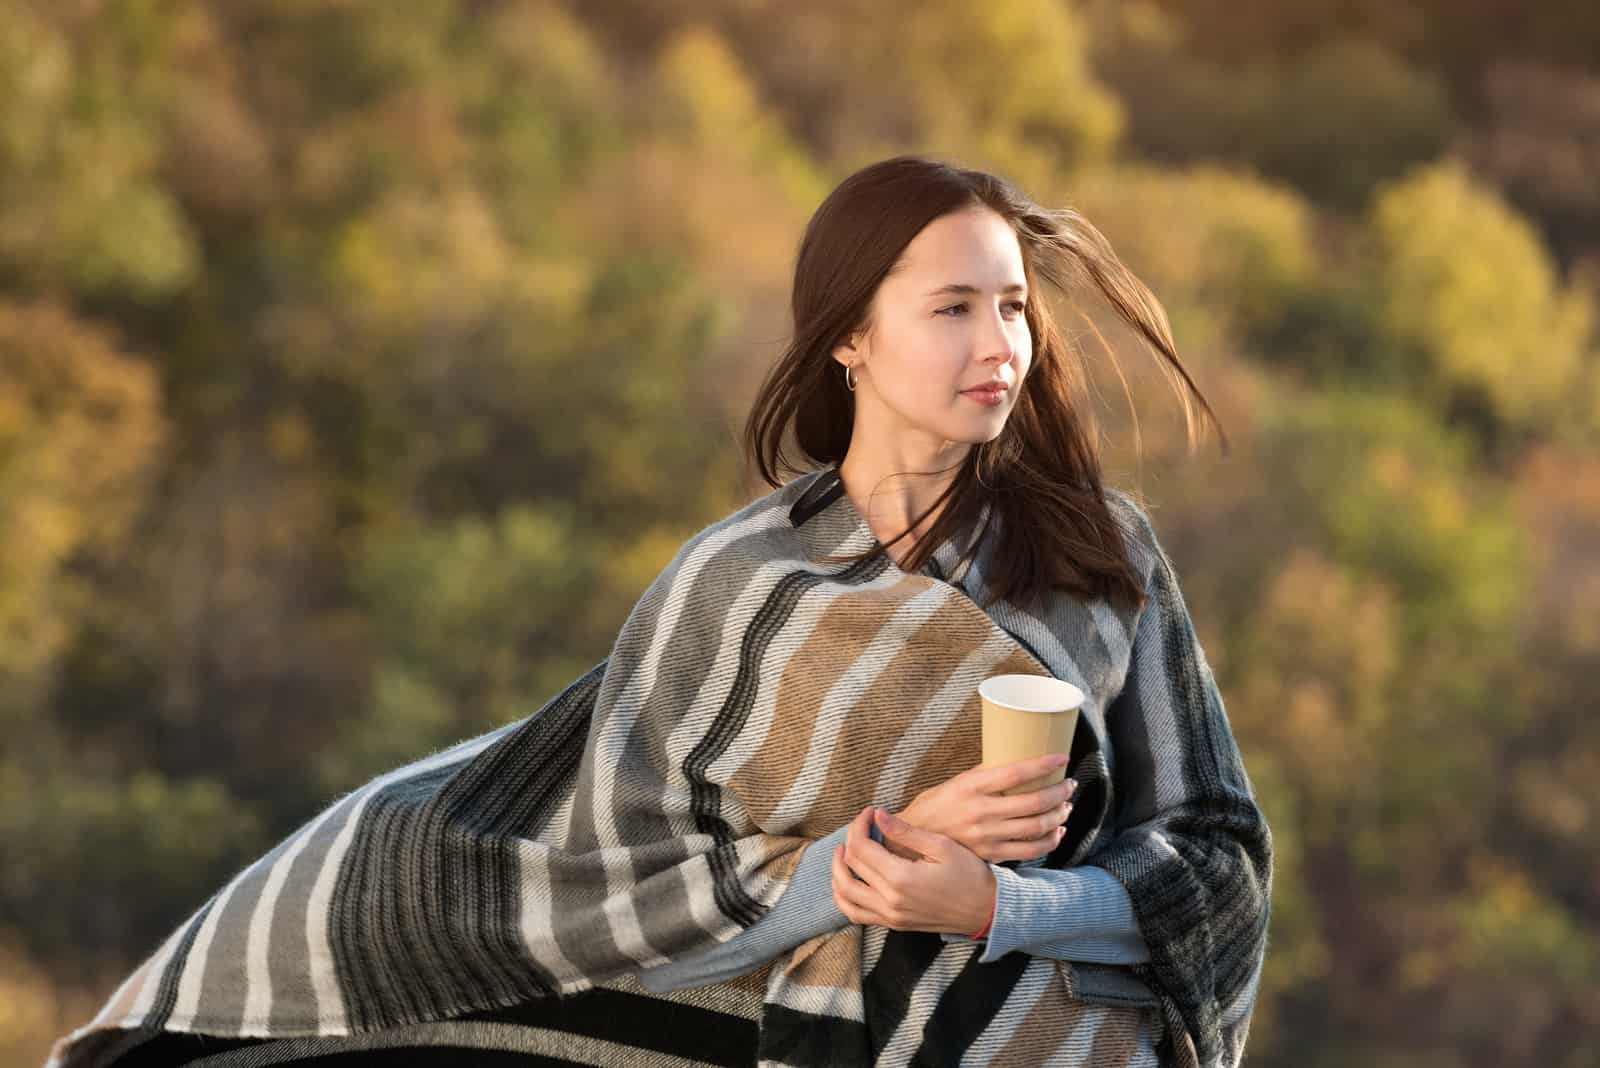 Pretty young woman wrapped in a blanket